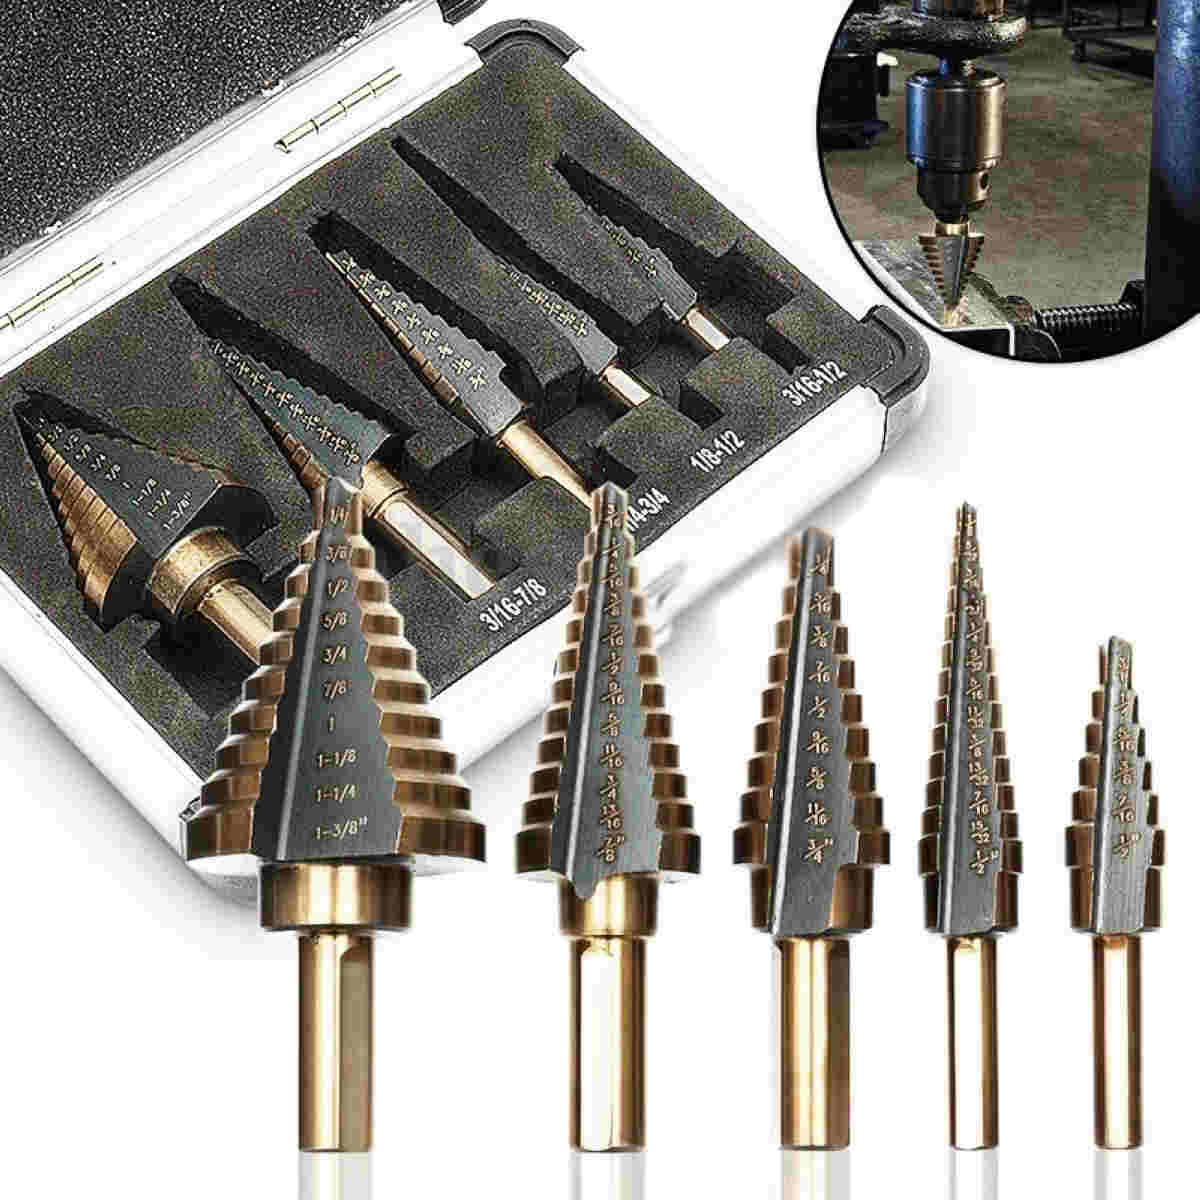 DWZ 5pcs HSS Large Cobalt Hole Titanium Cone Step Drill Bit Cutter Set Tools w/ Case 2017 5pcs industrial countersink drill bit set mayitr hss large cobalt hole titanium cone step drill bit cutter kit tools